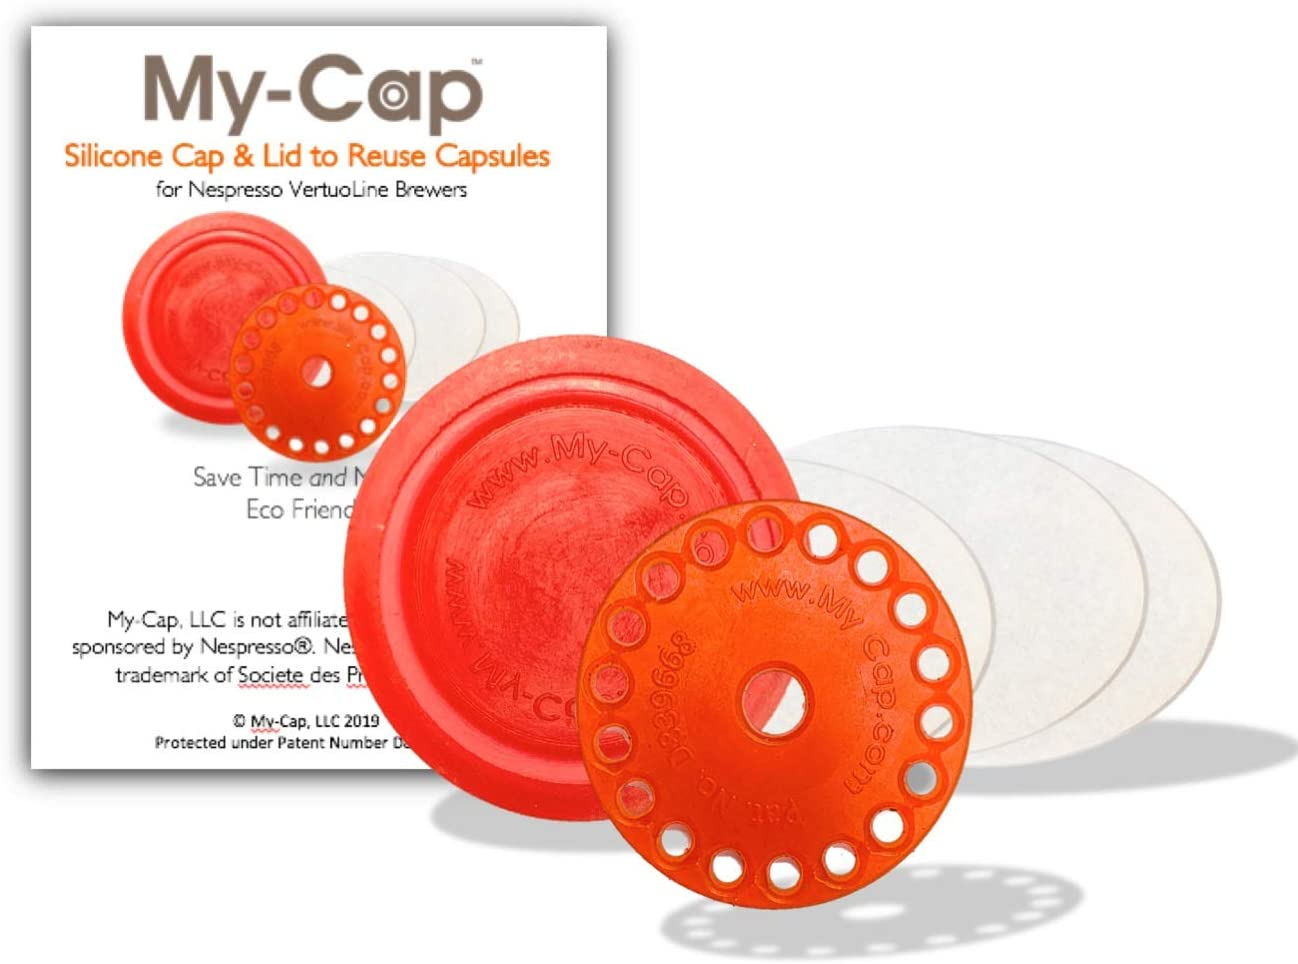 My-Cap's Silicone Cap and Lid to Reuse Capsules for Nespresso VertuoLine Brewers (Papaya Color)